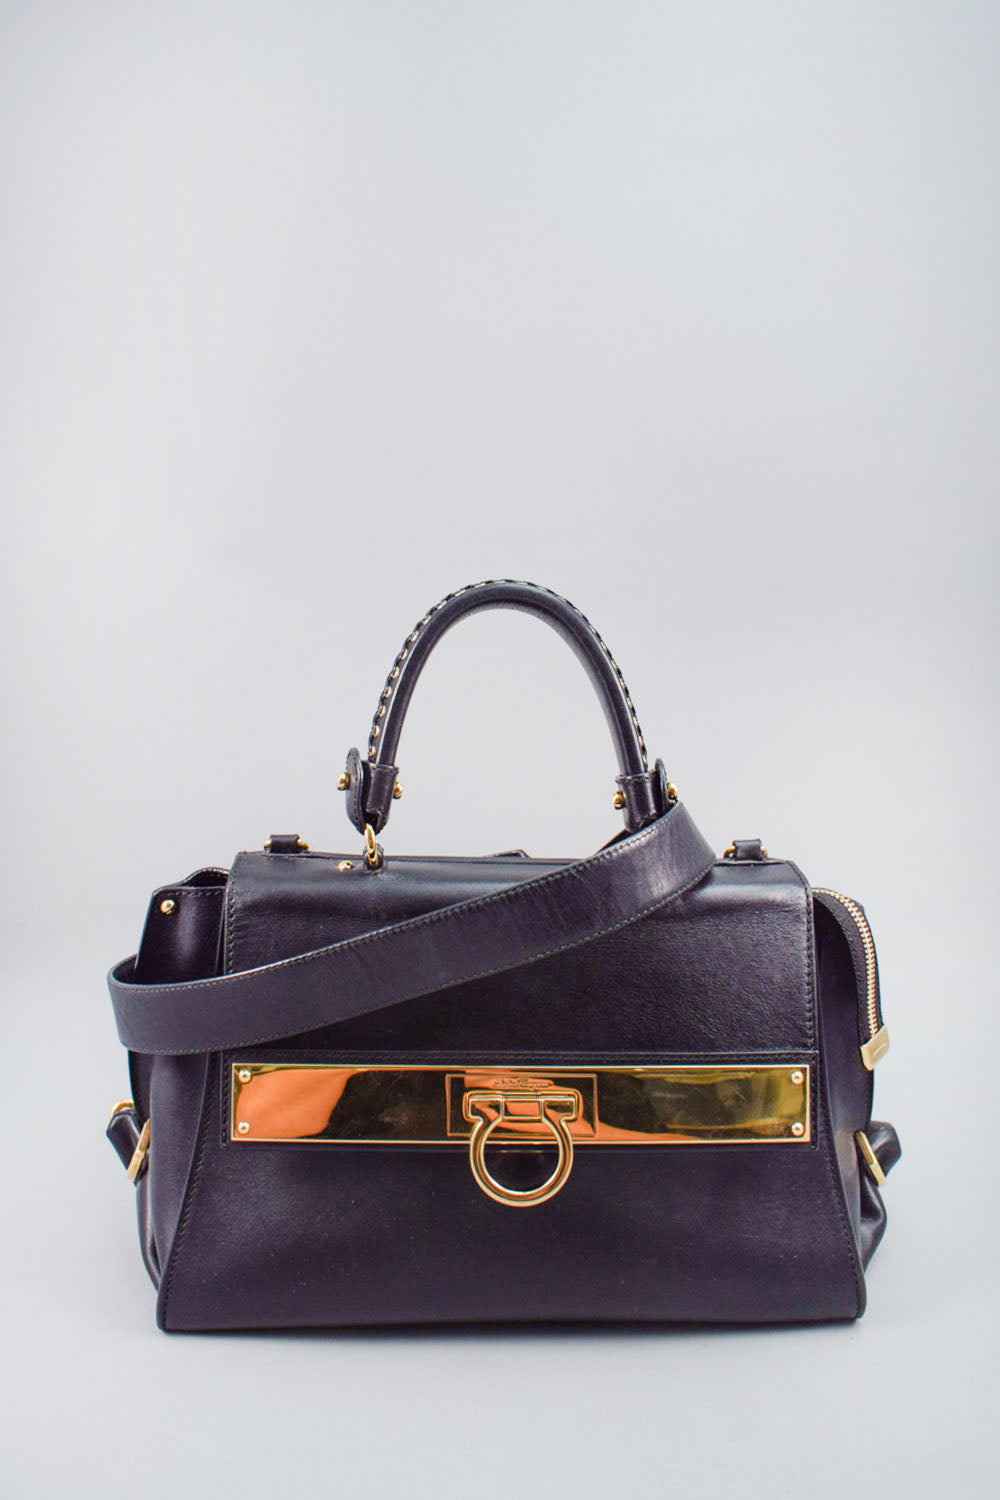 Salvatore Ferragamo Black Leather Top Handle Bag w/ Strap